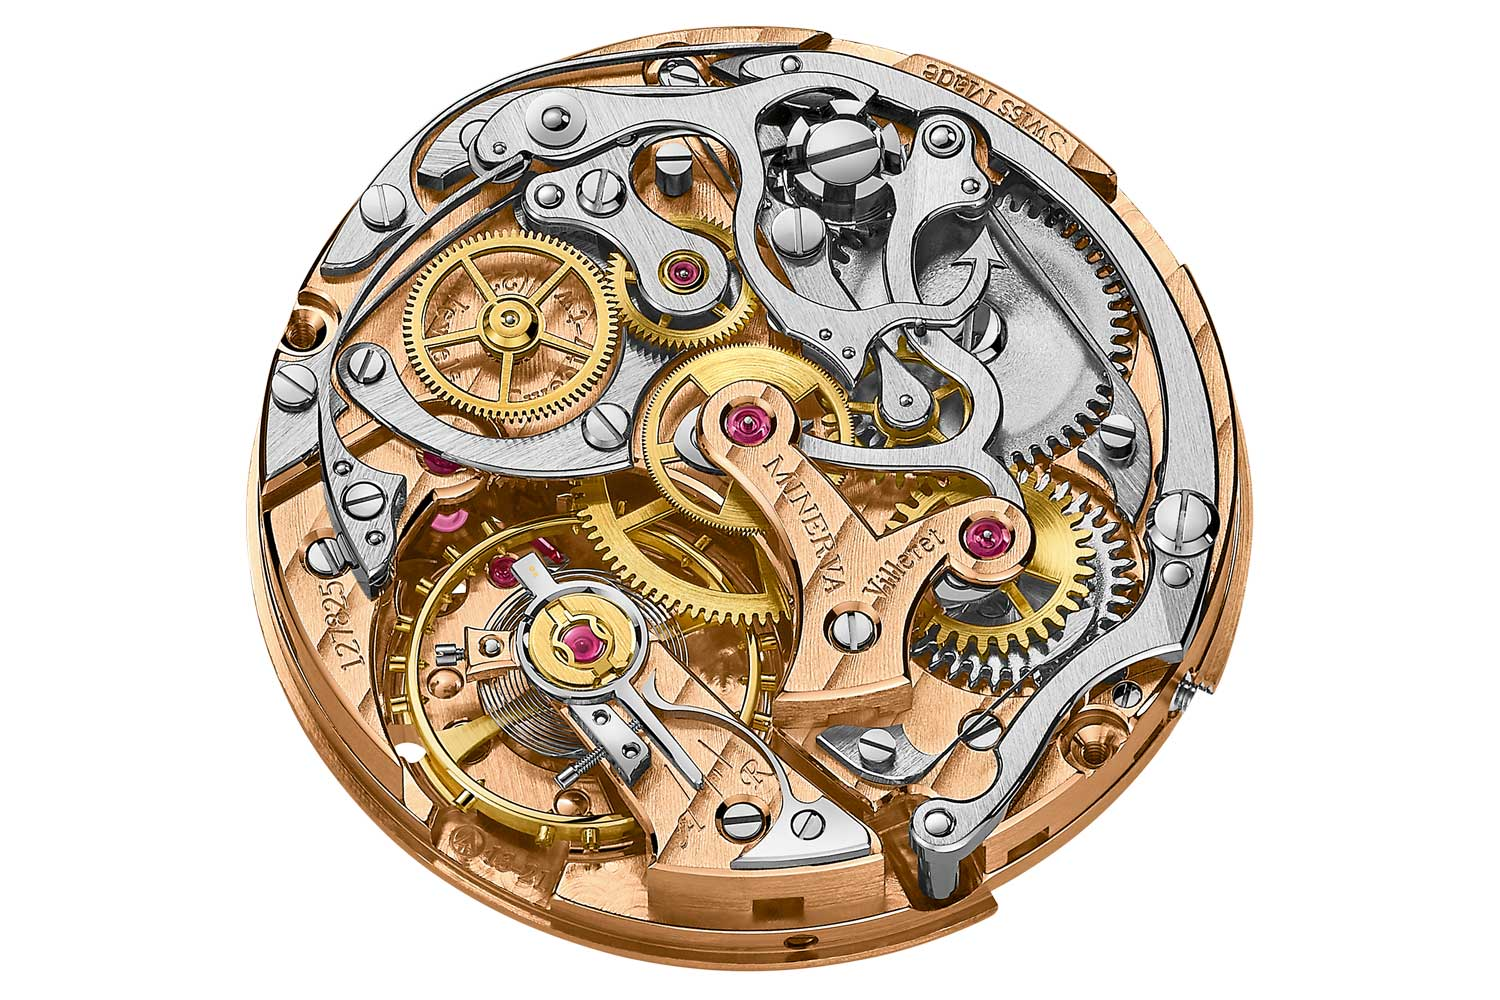 The open architecture of this Minerva caliber Montblanc M13.21 serves as a good example of the layout of a column wheel system (at the top) and its horizontal coupling. Just above and to the right of the central chronograph wheel, the intermediate wheel and the drive wheel are plainly visible